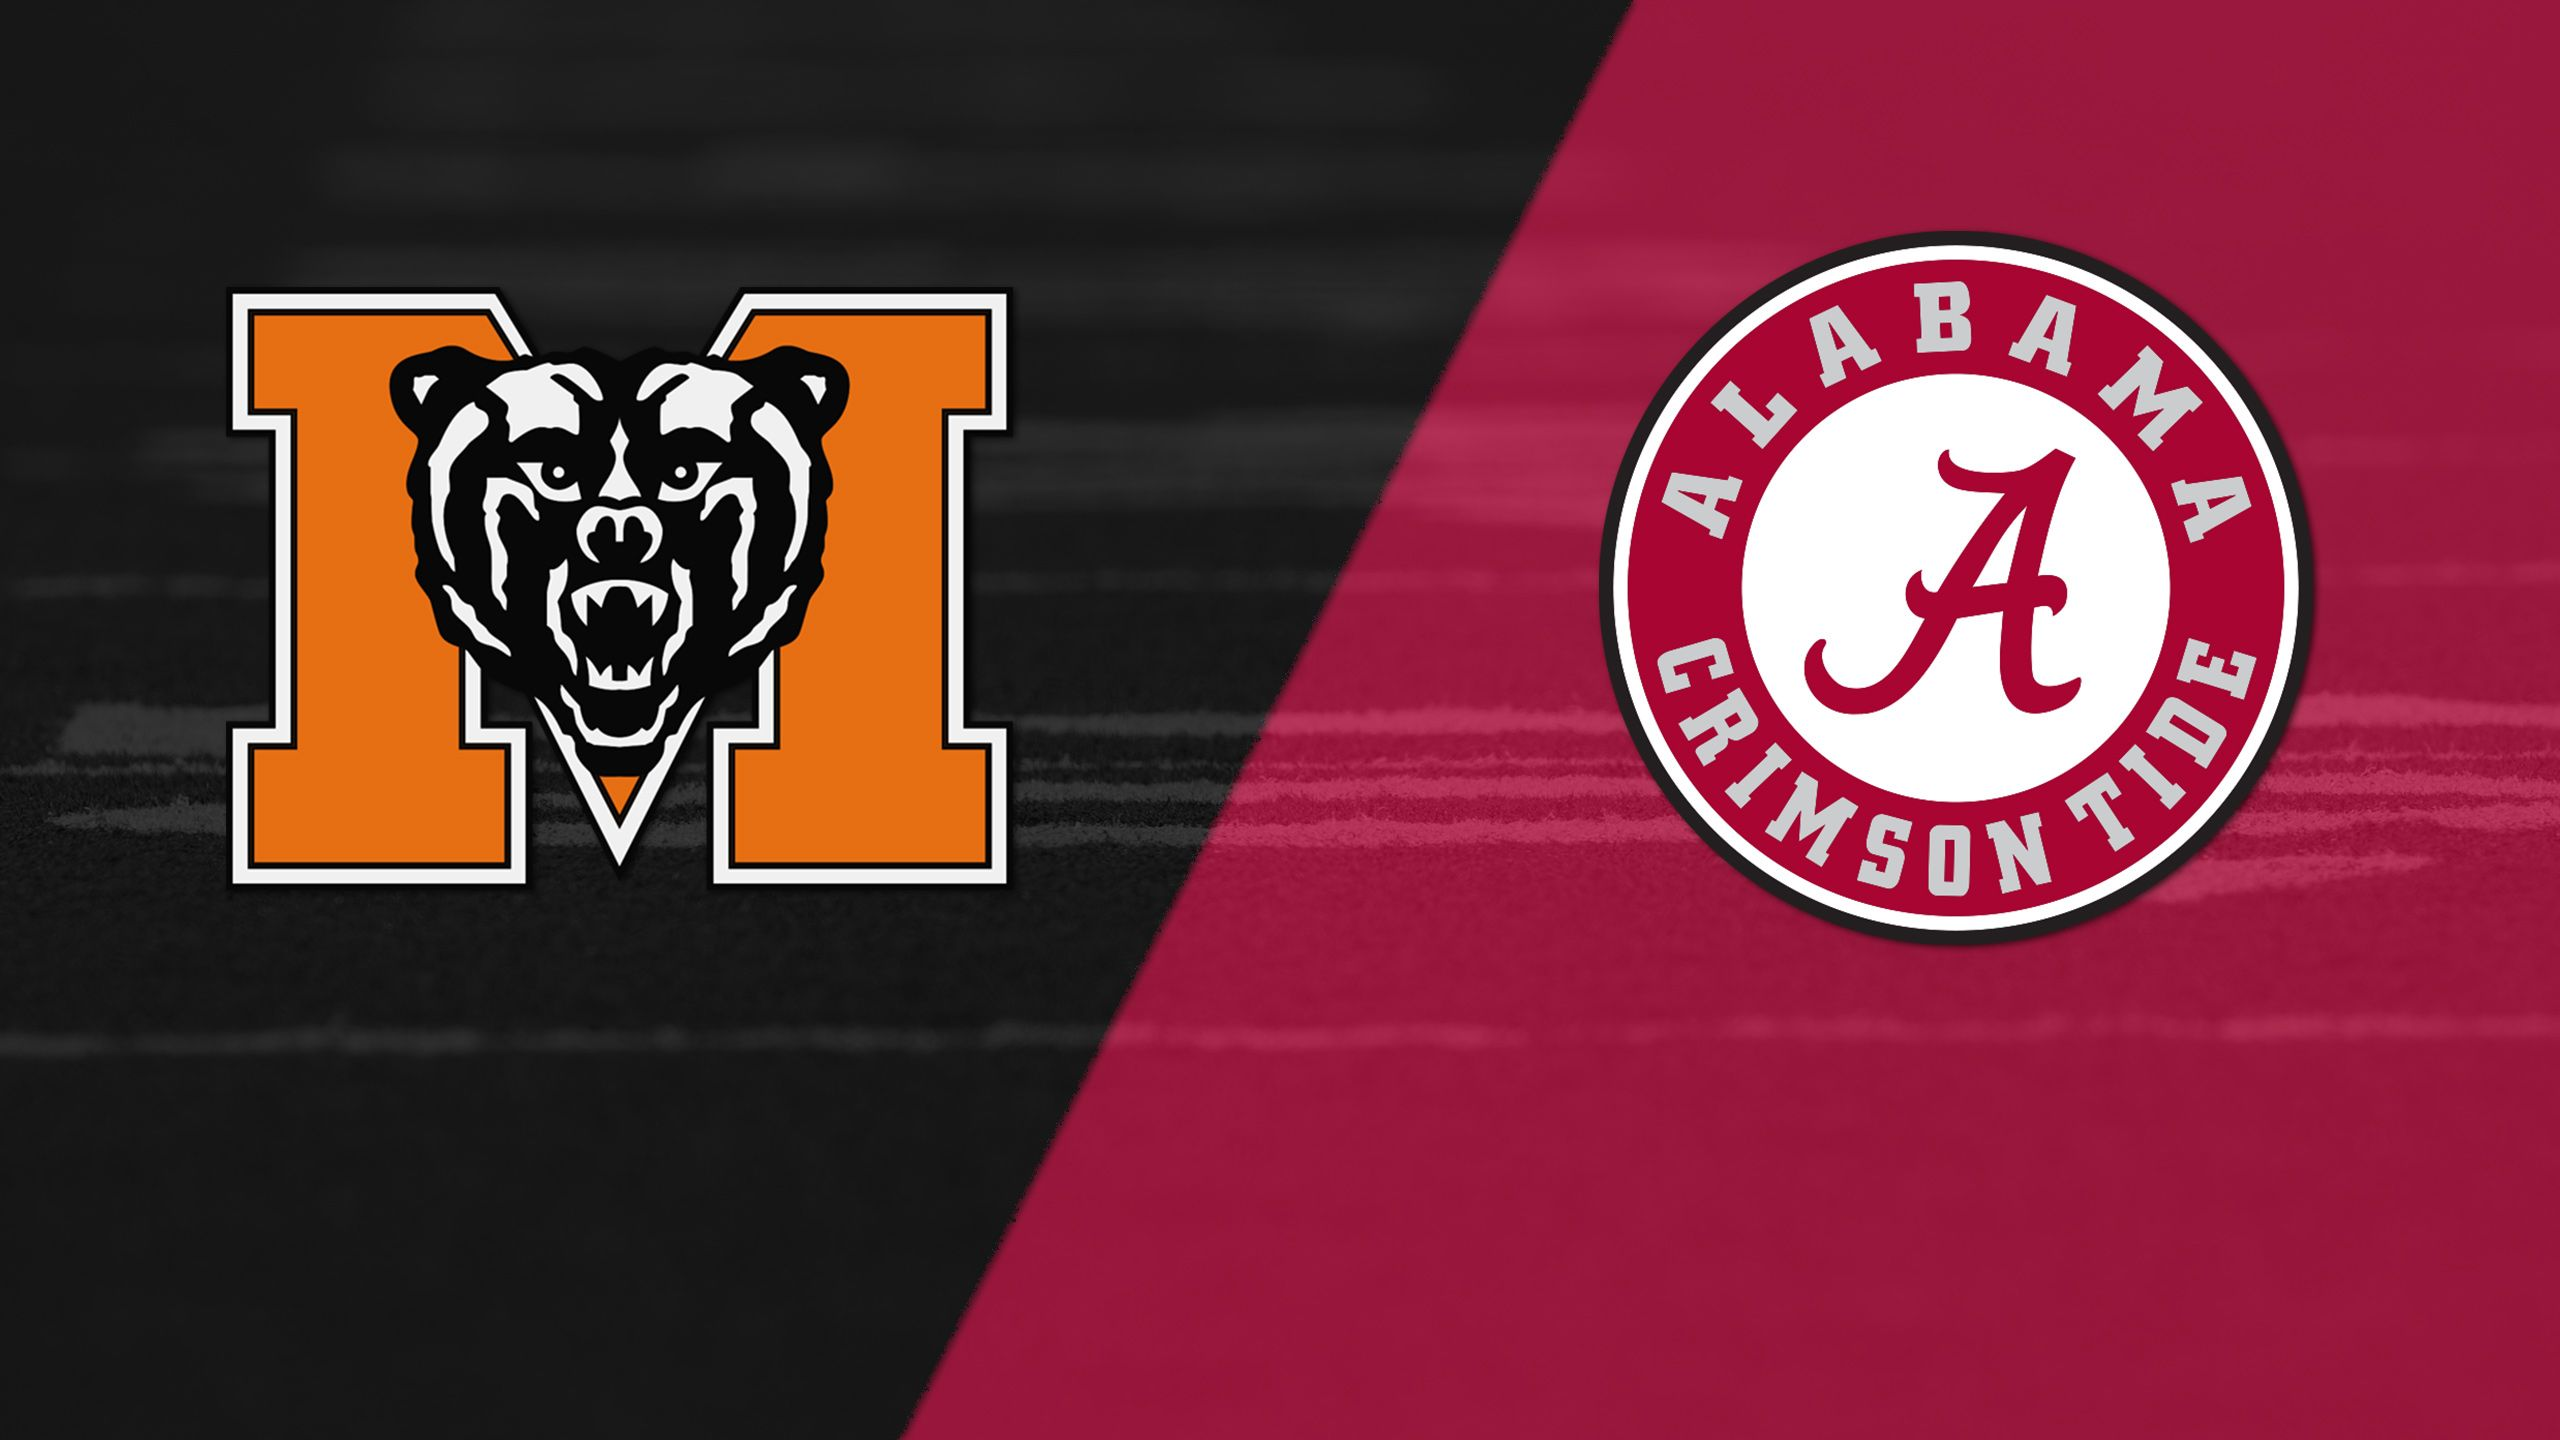 Mercer vs. #1 Alabama (Football)